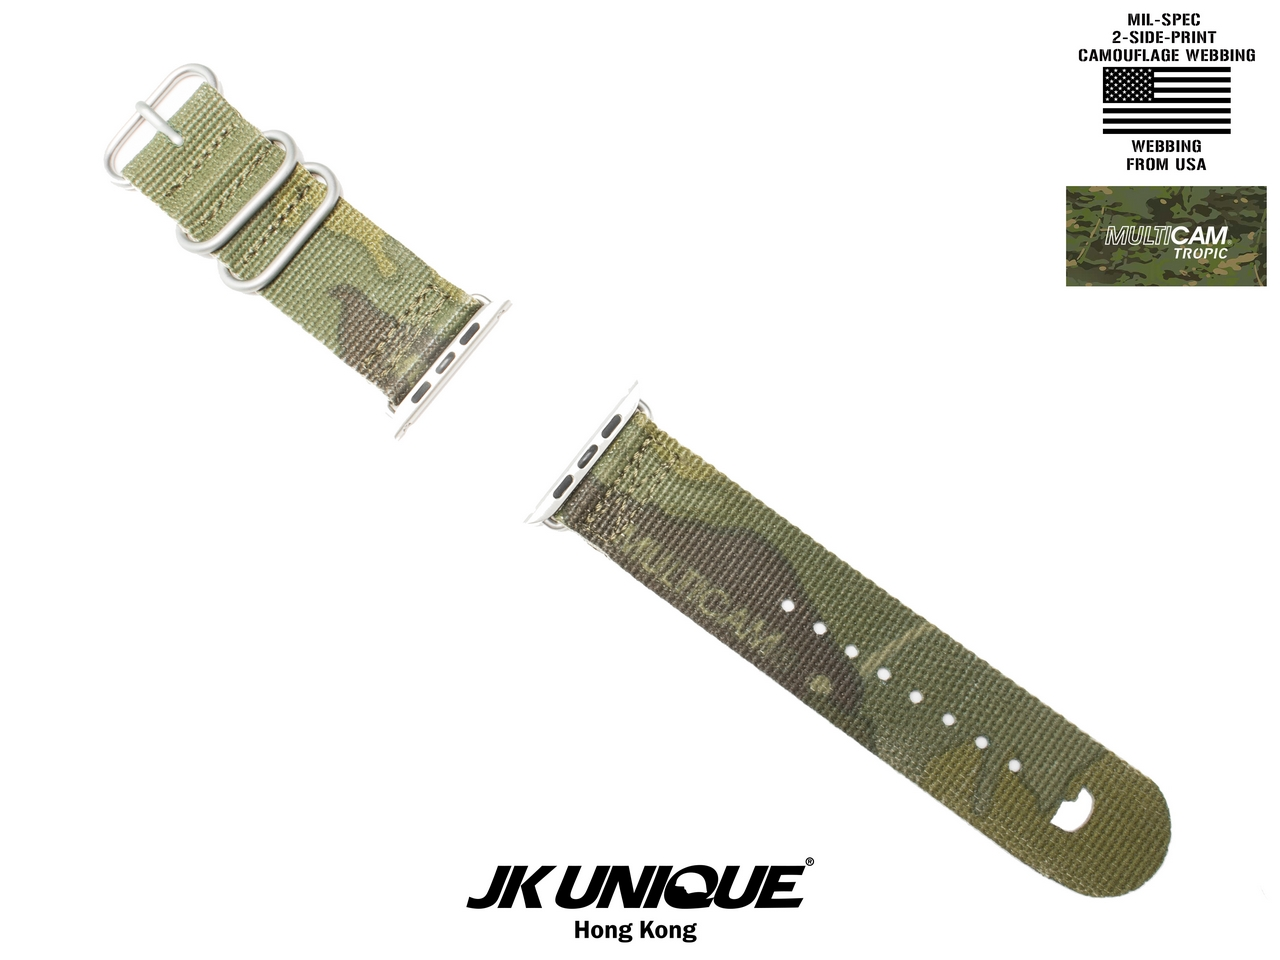 JK-UNIQUE-CAMO-NATO-Apple-Watch-Strap-42mm-SV-Multicam-Tropic-0 (1280).jpg